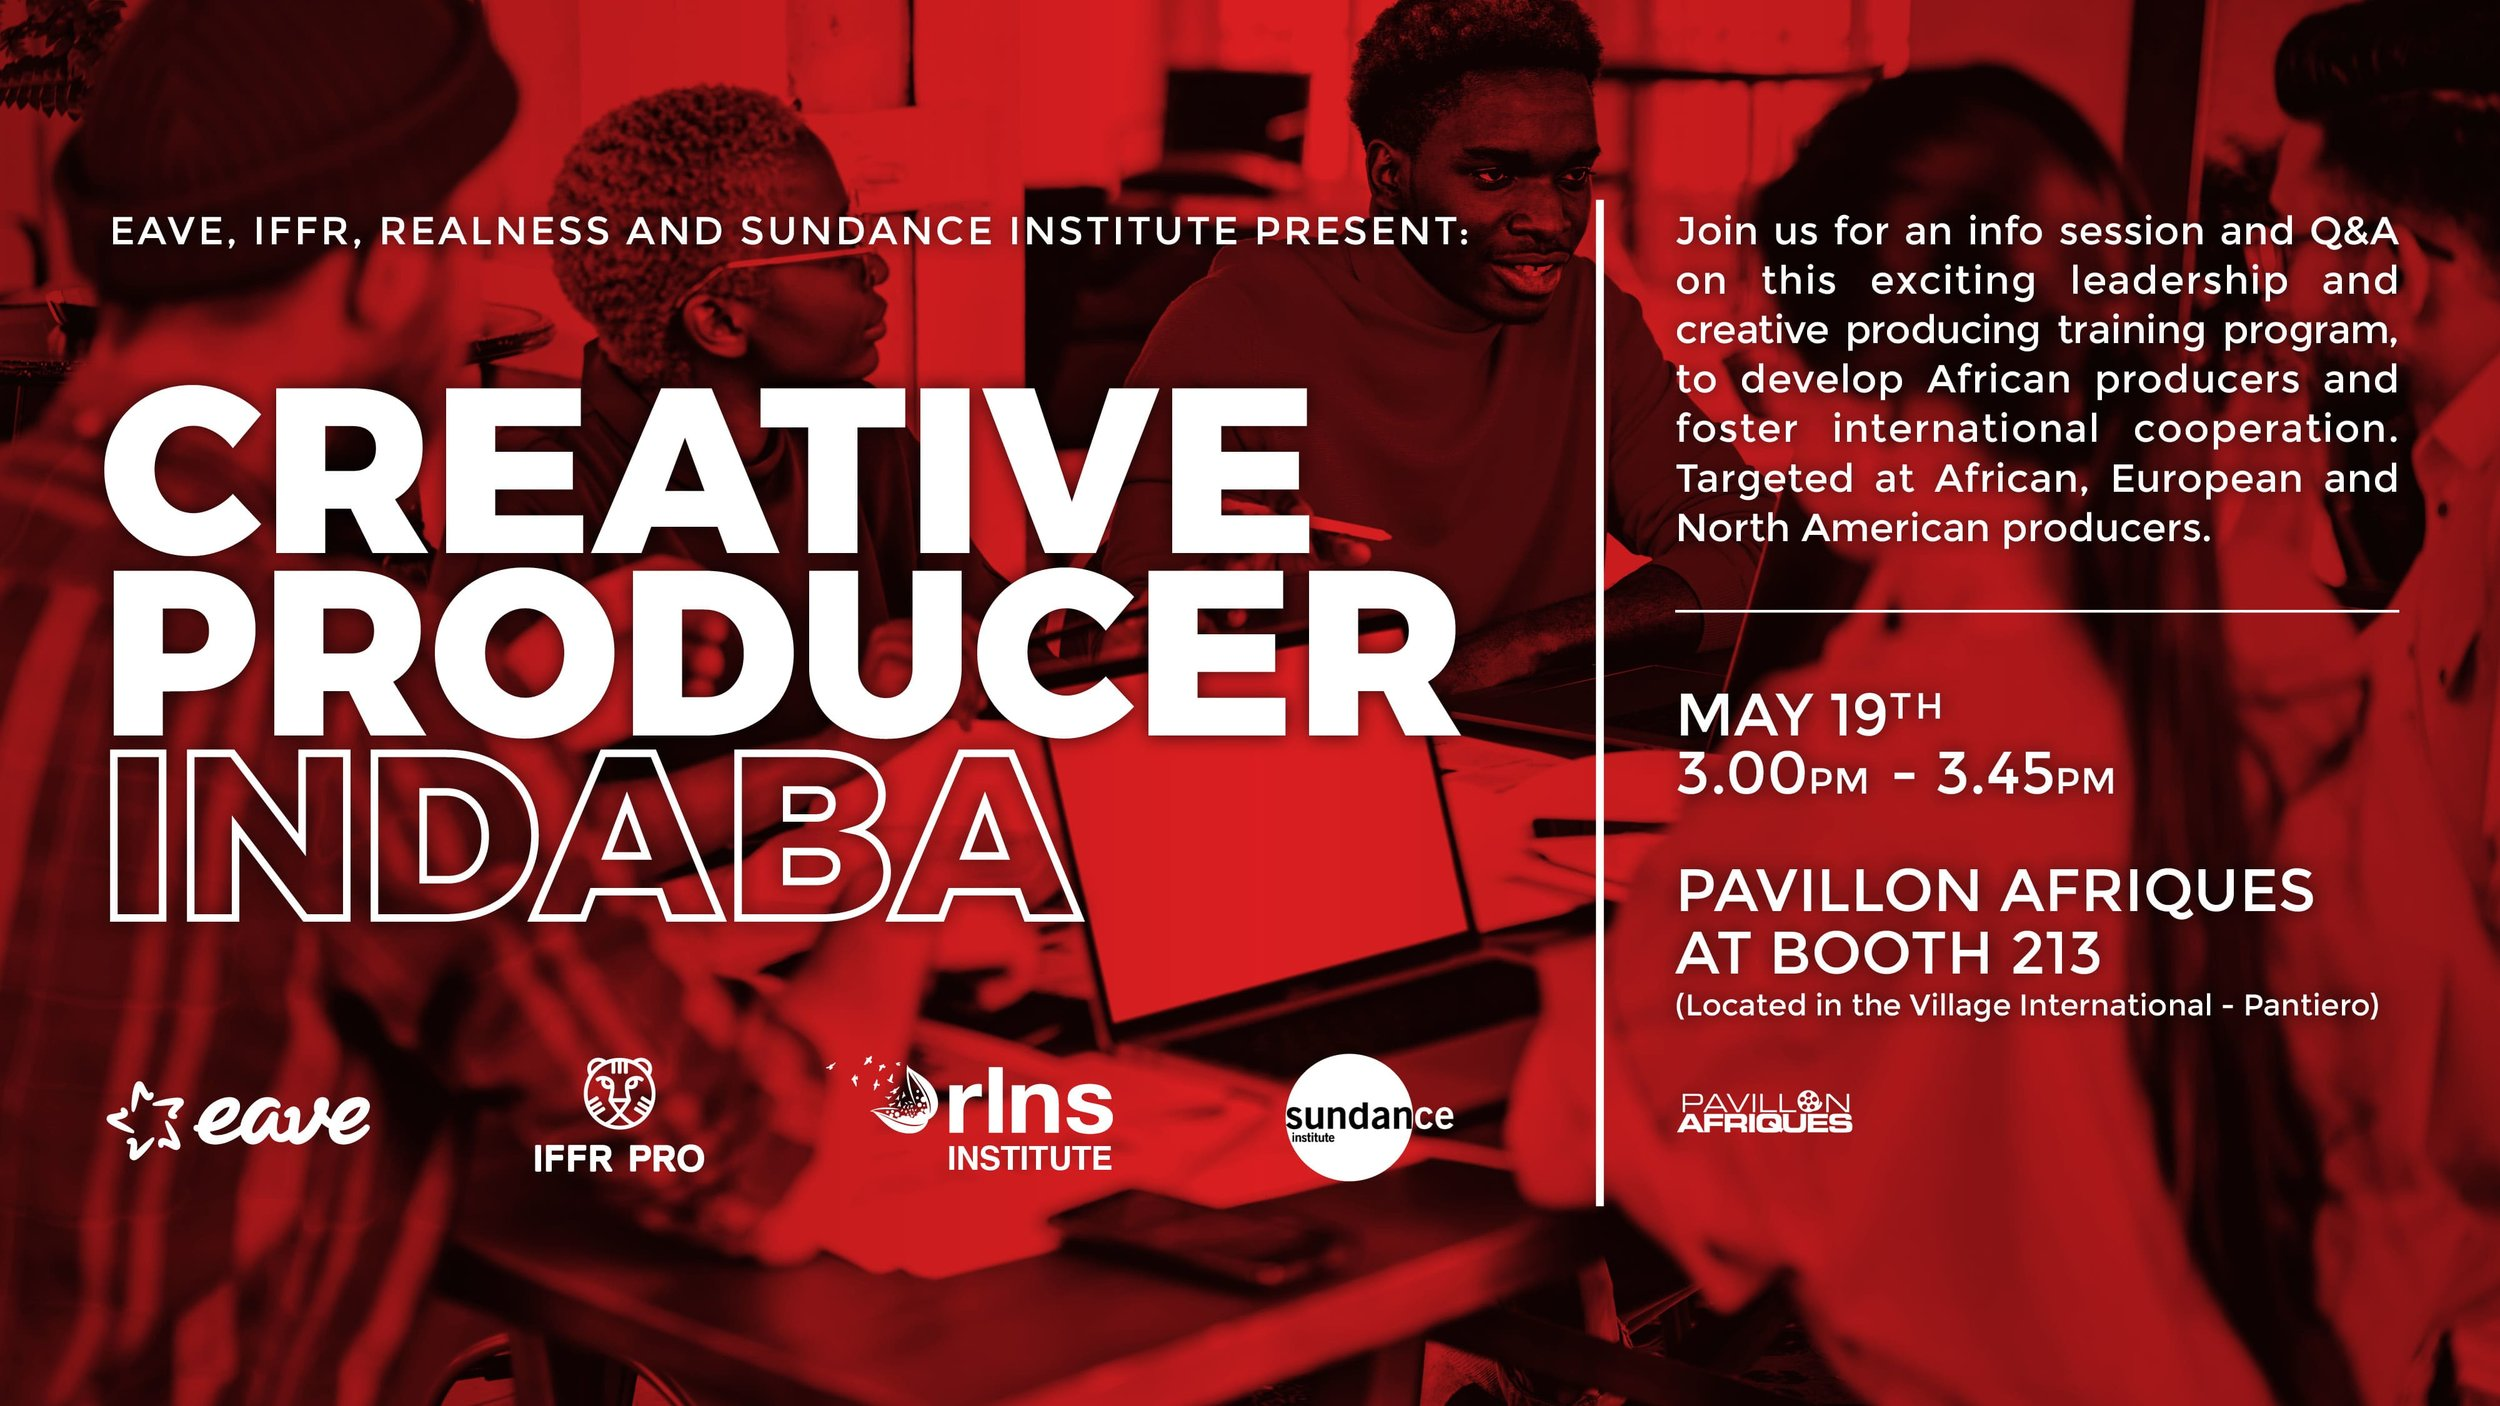 Creative Producer's Indaba - Invite Emailer.jpg